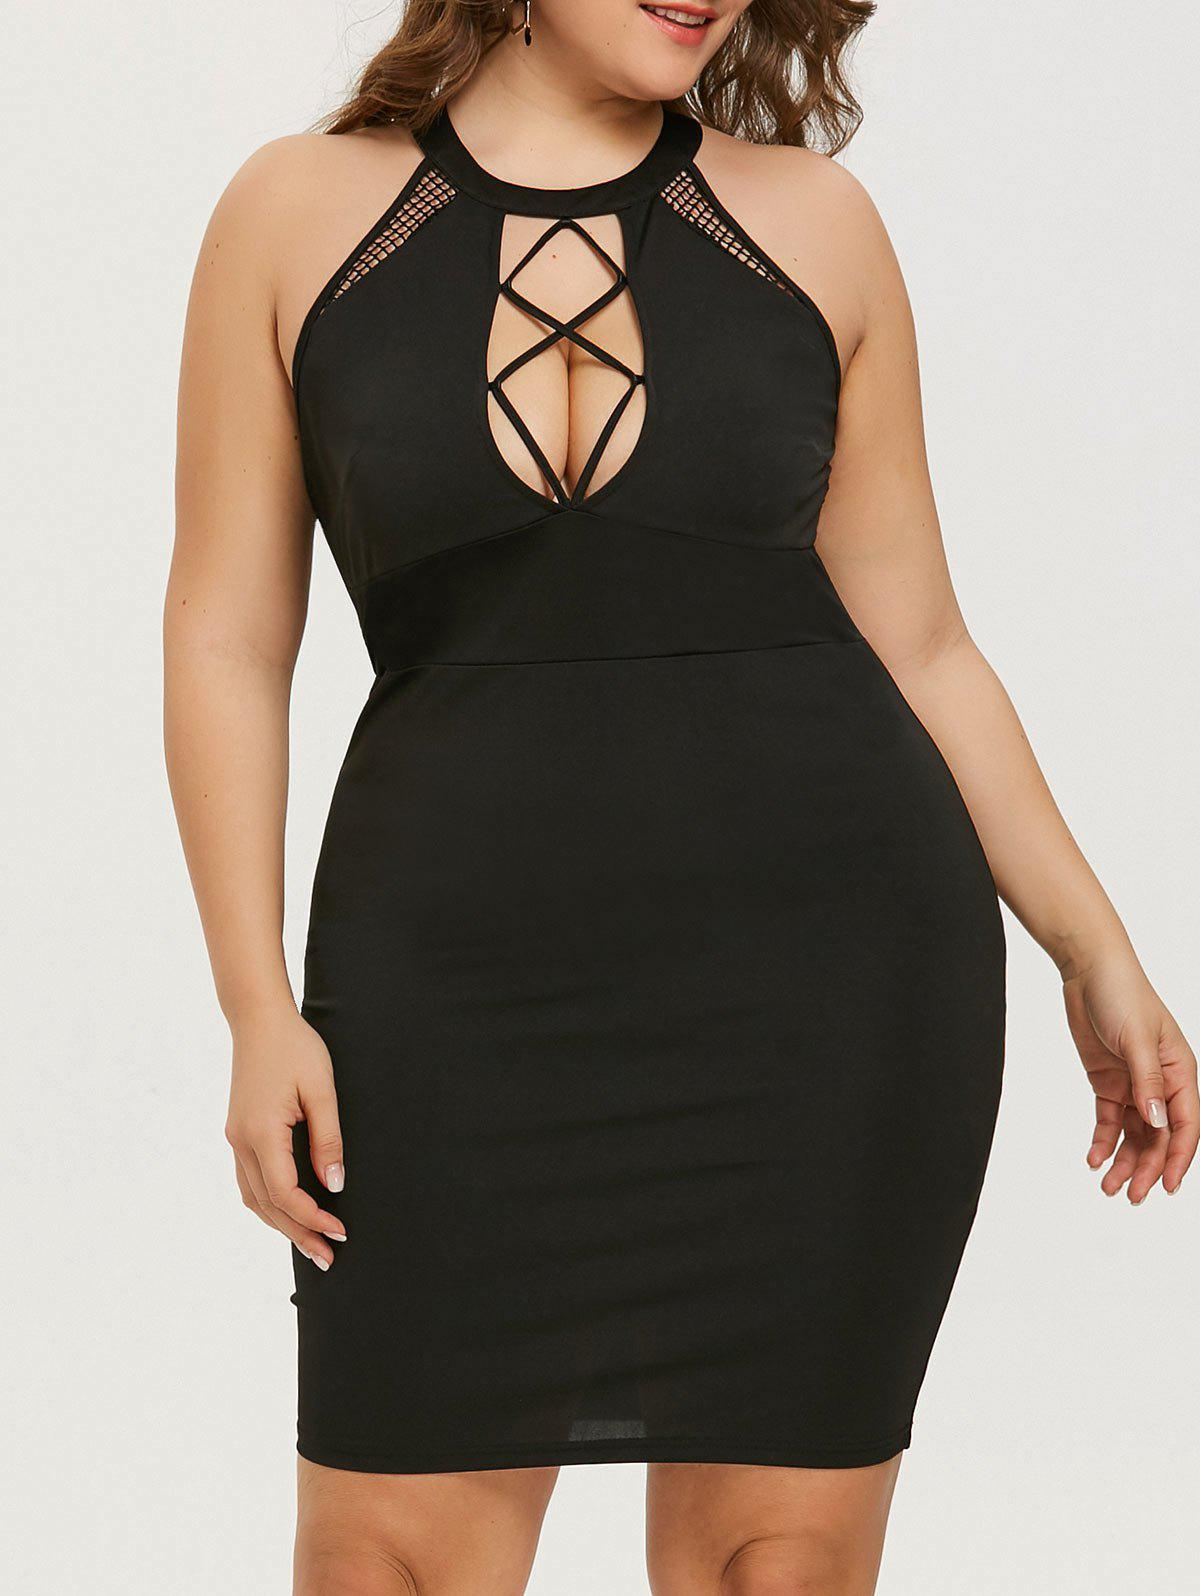 bc3d8f5fc1e57 Mini Plus Size Cut Out Bodycon Dress